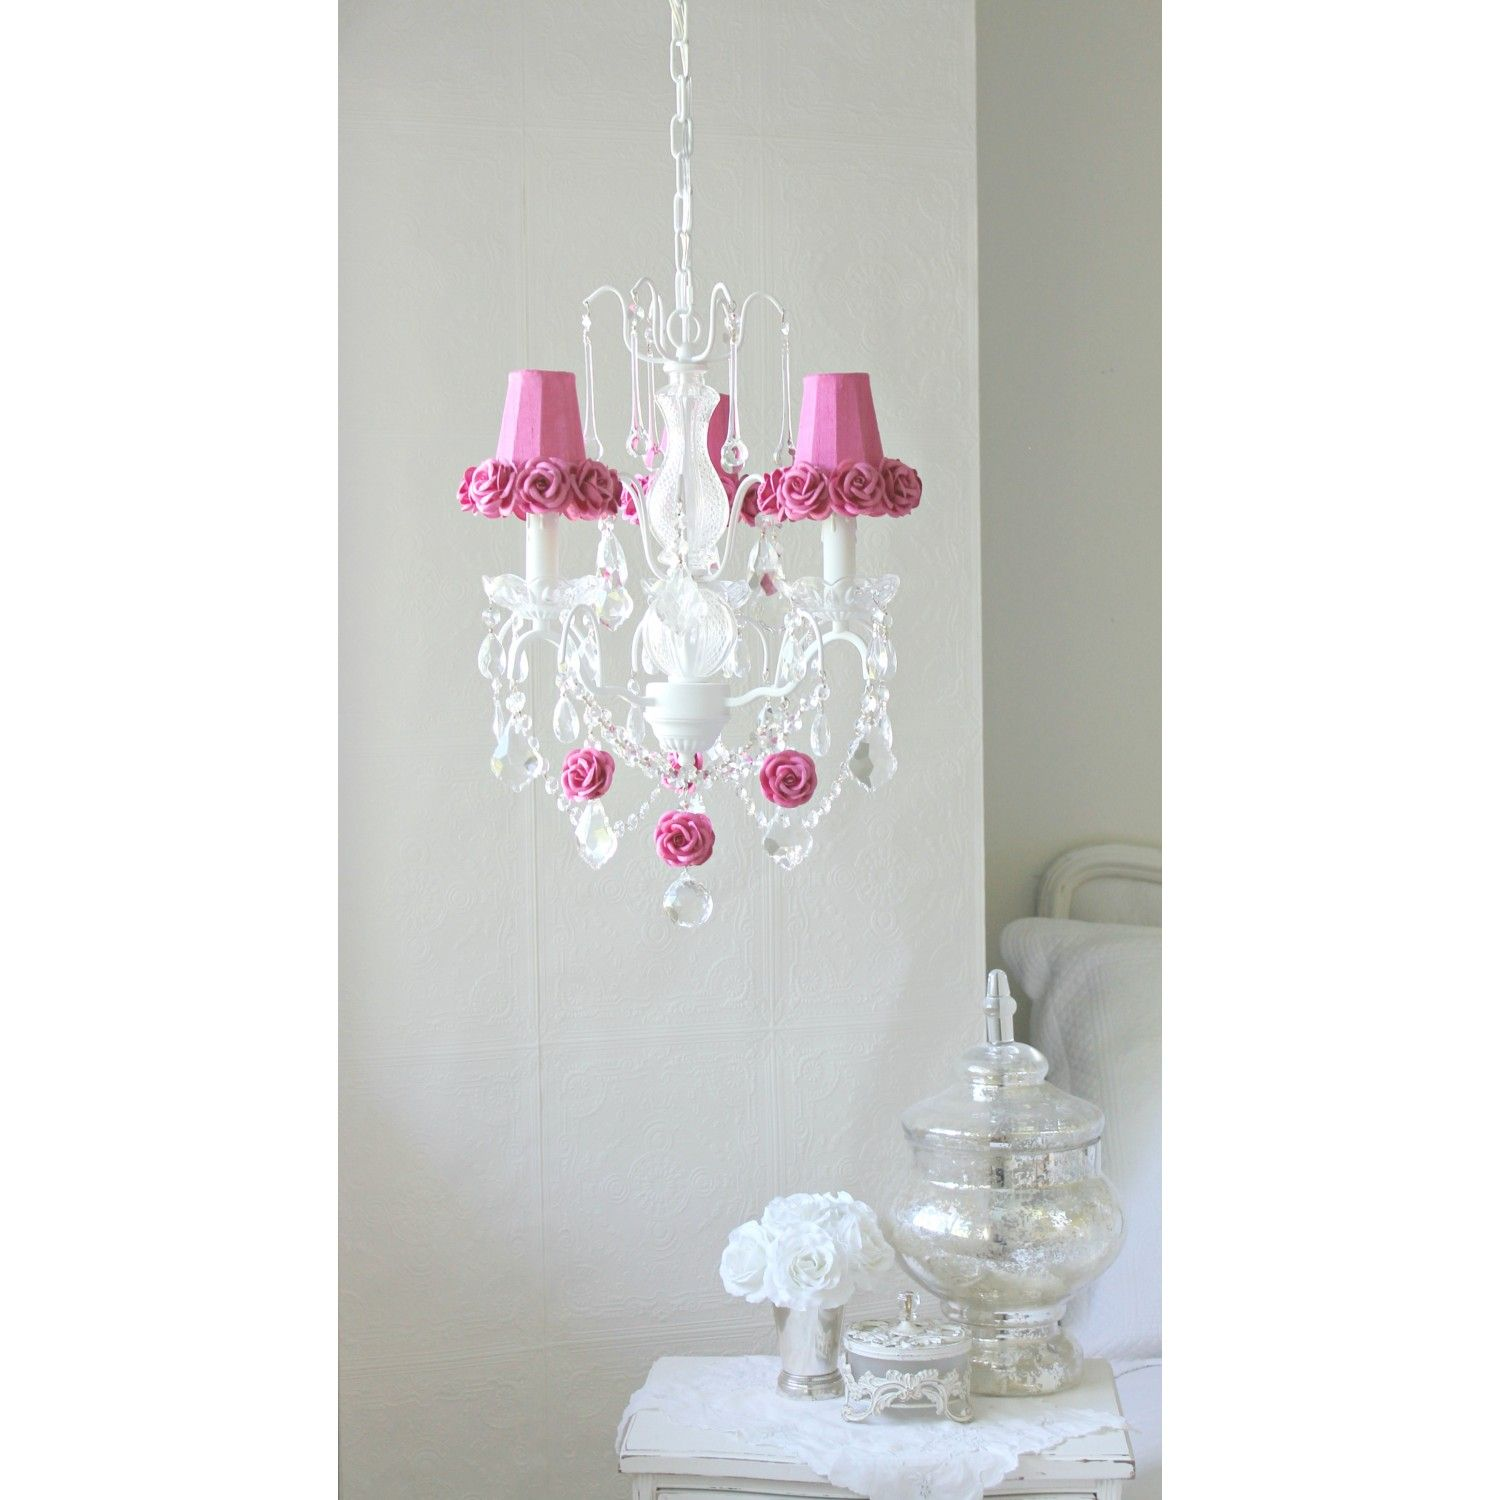 Hot Pink Rose Lamp Shade Chandelier | Kids Rooms ...